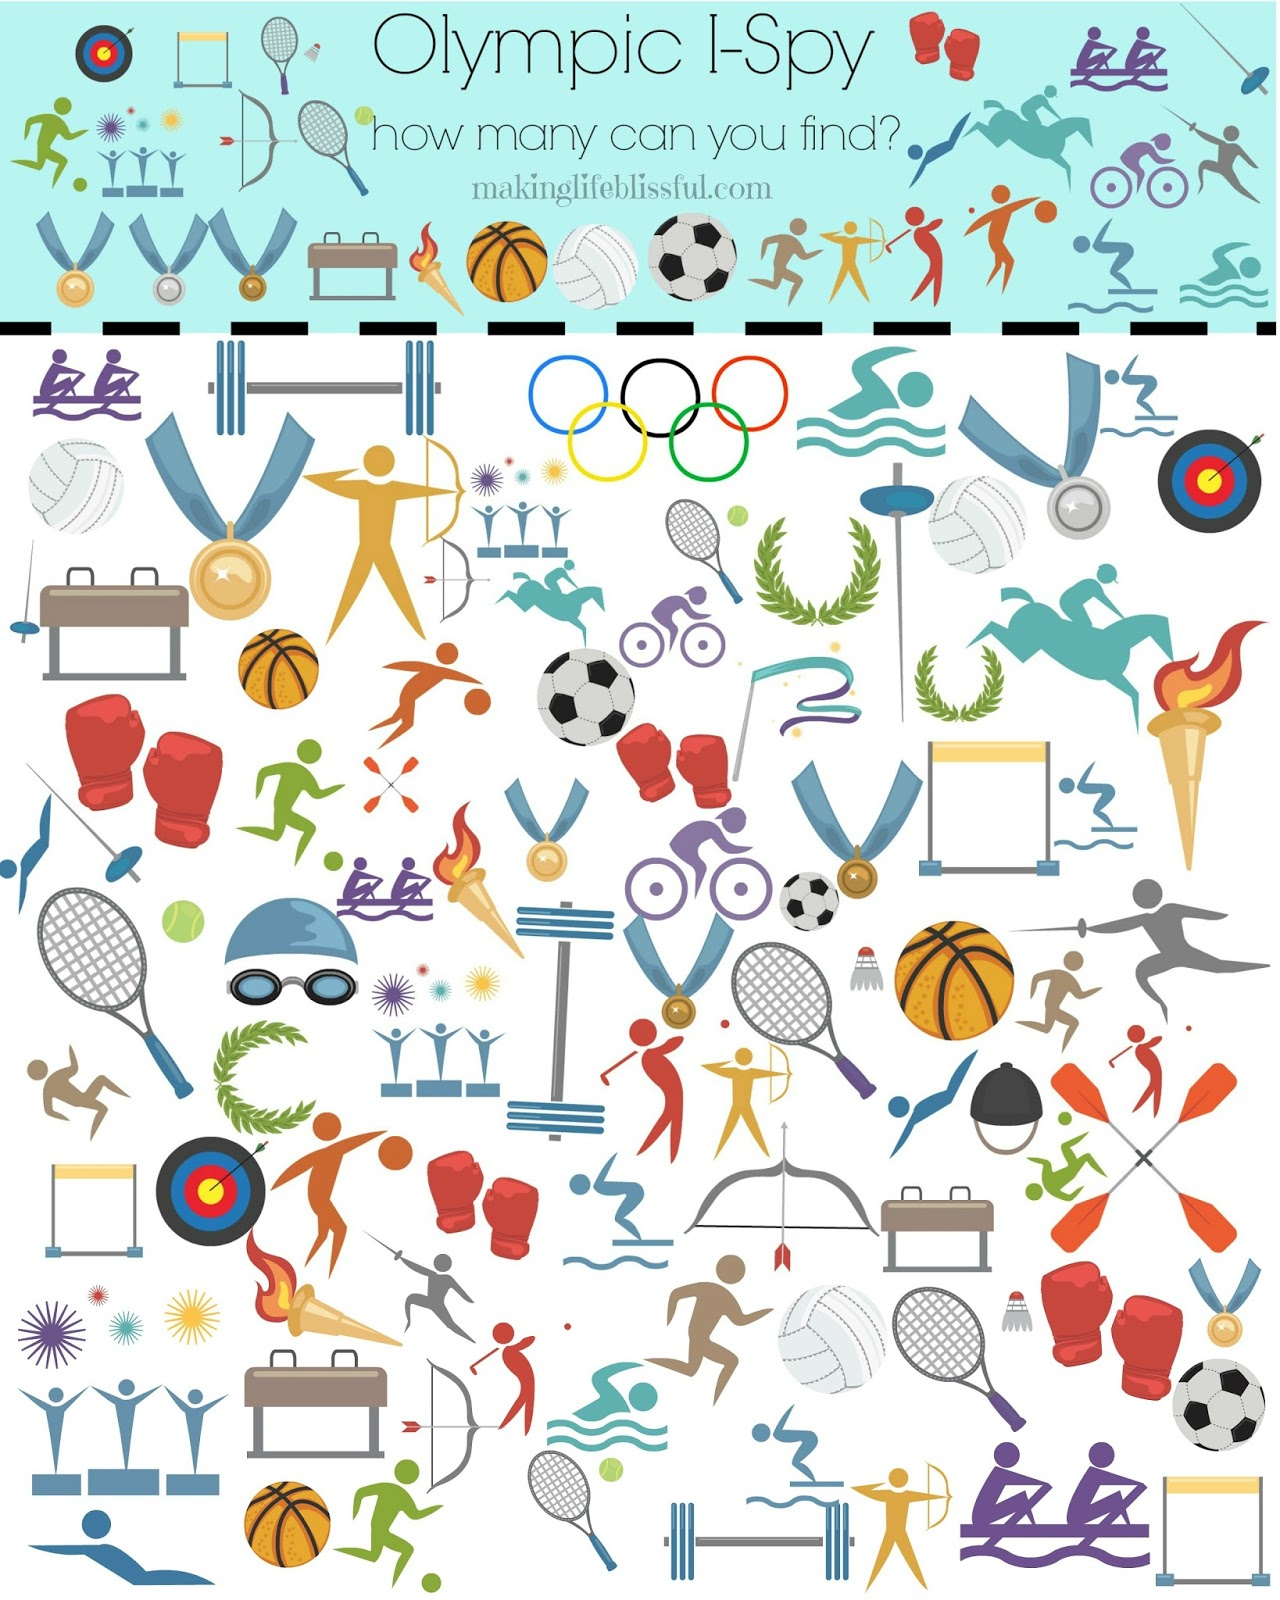 picture relating to Printable Olympic Schedule referred to as 8 Very simple Olympic Celebration Guidelines for Little ones! Generating Lifestyle Blissful